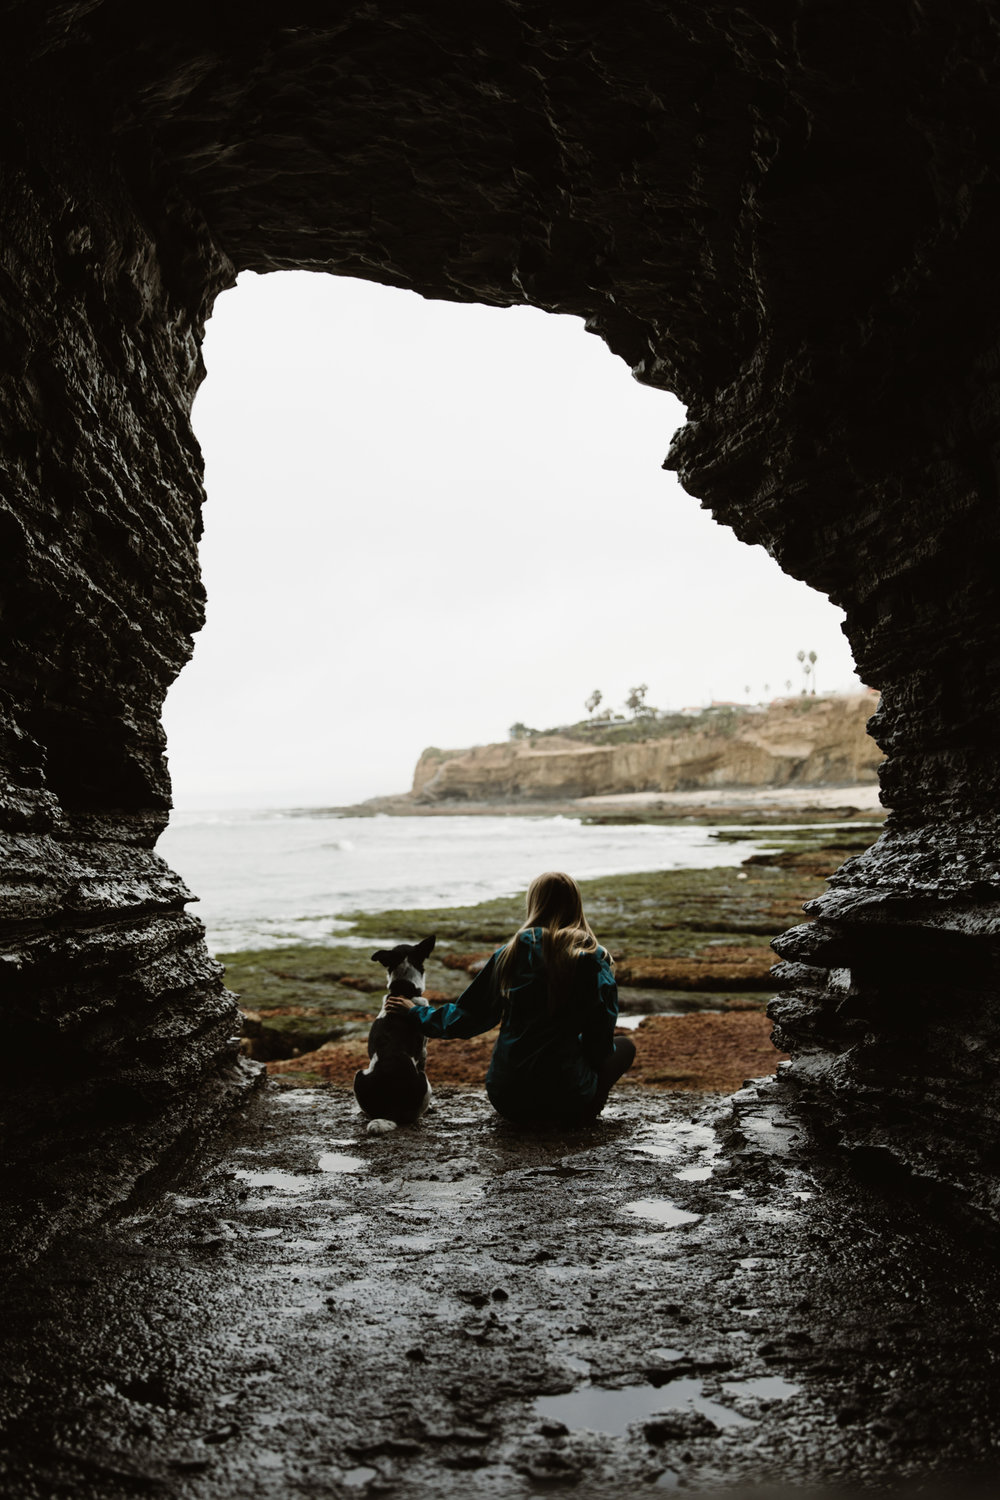 exploring san diego | utah and california adventure elopement photographers | the hearnes adventure photography | www.thehearnes.com